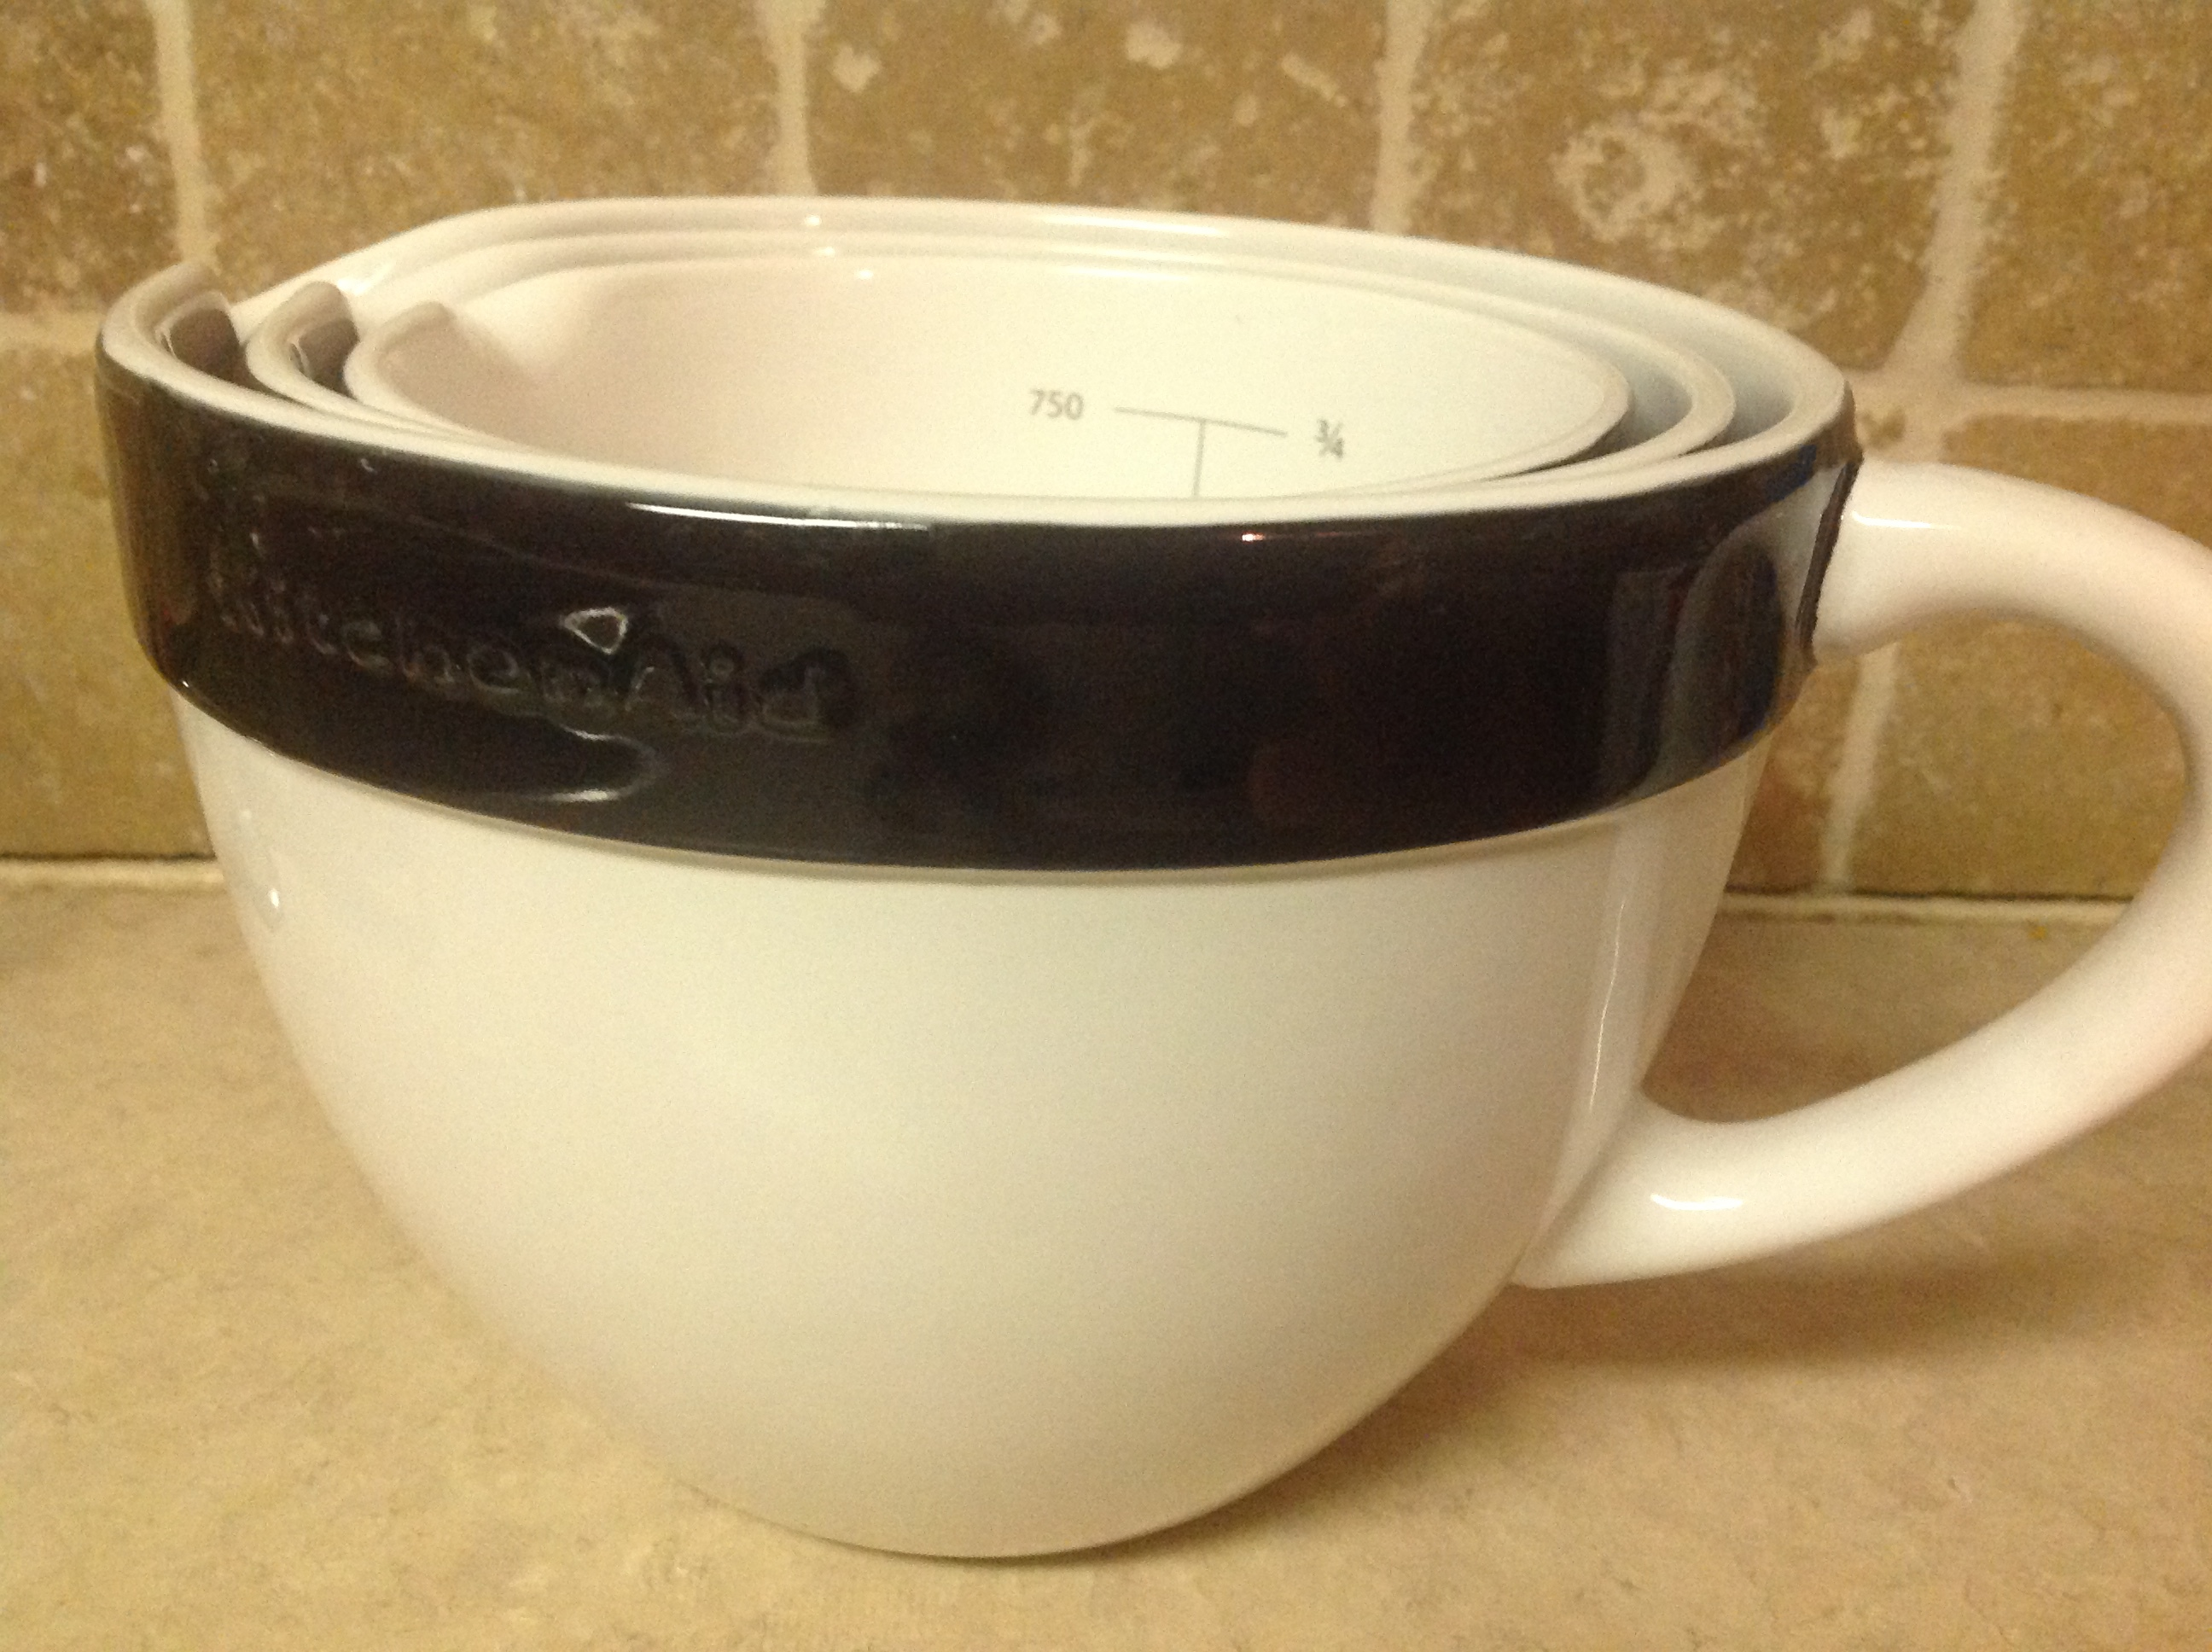 Kitchen Aid Ceramic Measuring Cups Reviews In Bakeware